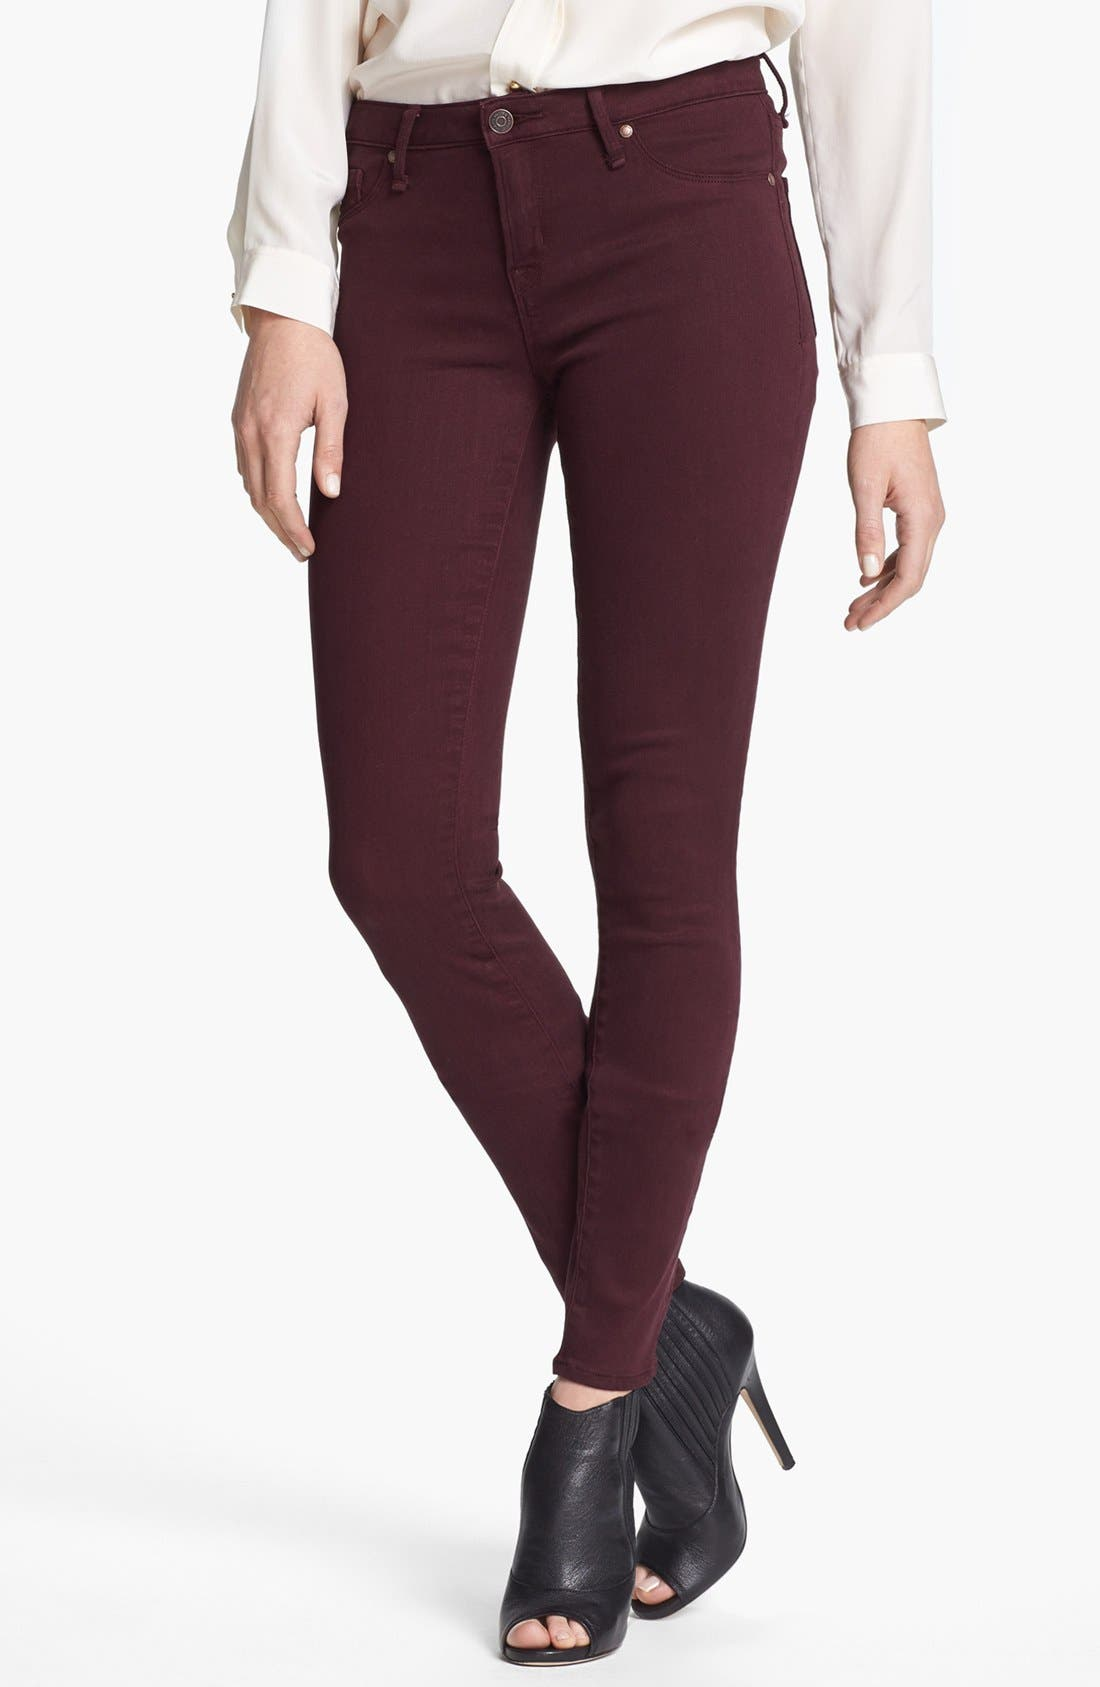 Main Image - MARC BY MARC JACOBS 'Stick' Colored Skinny Stretch Jeans (Wine Tasting)